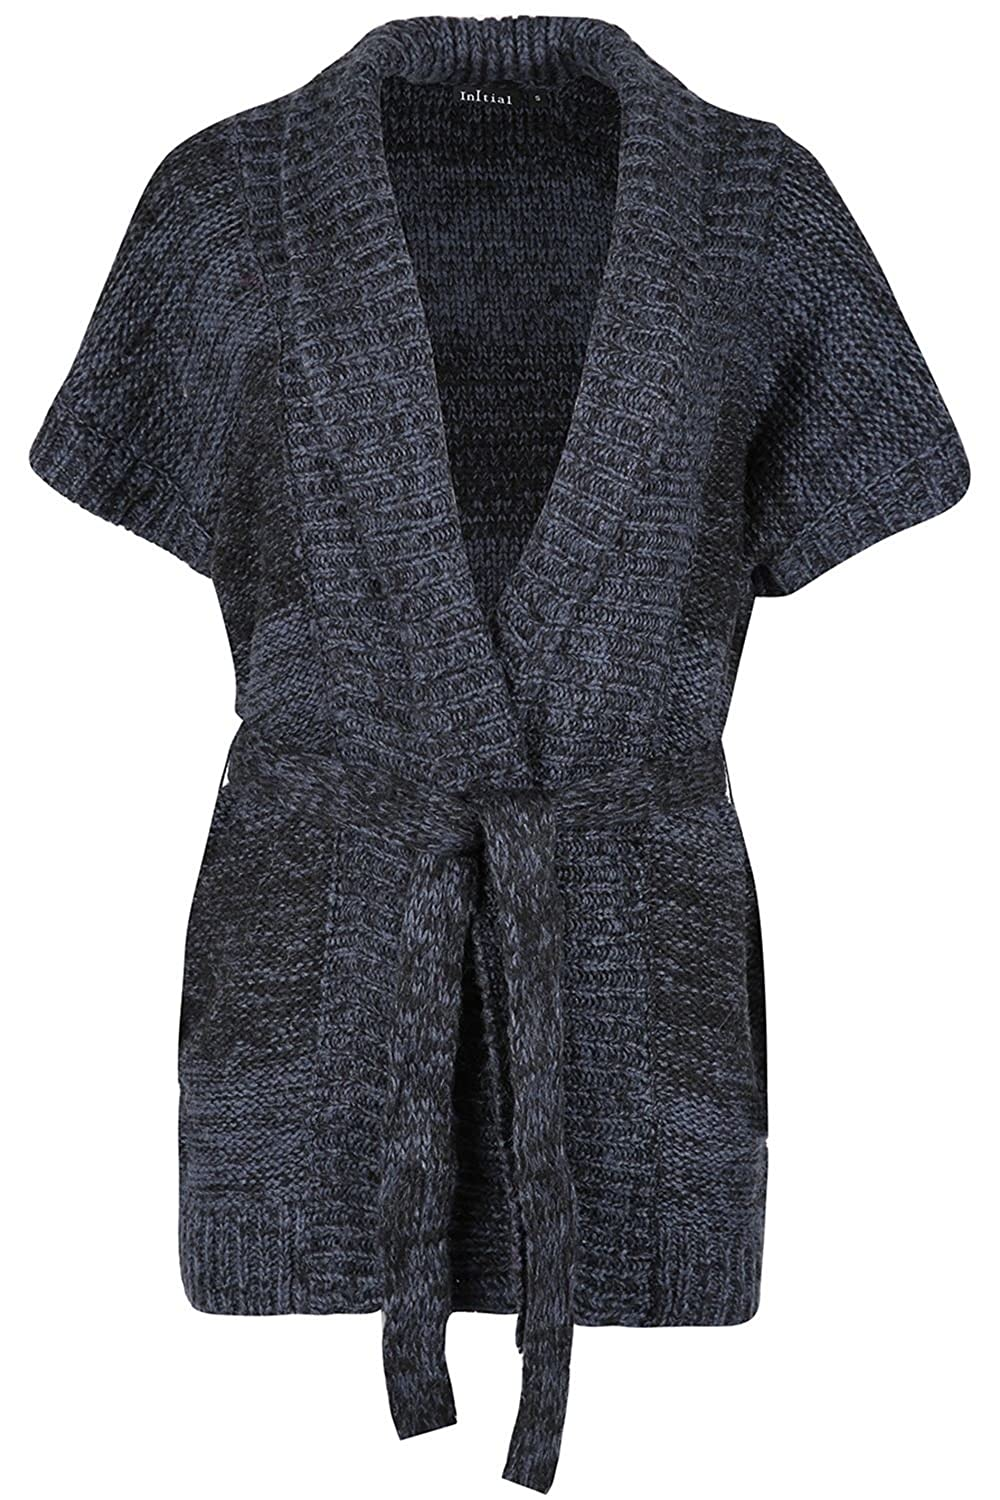 Women Ladies Open Front Collared Cap Sleeve Tie Belted Marl Knitted Cardigan Top